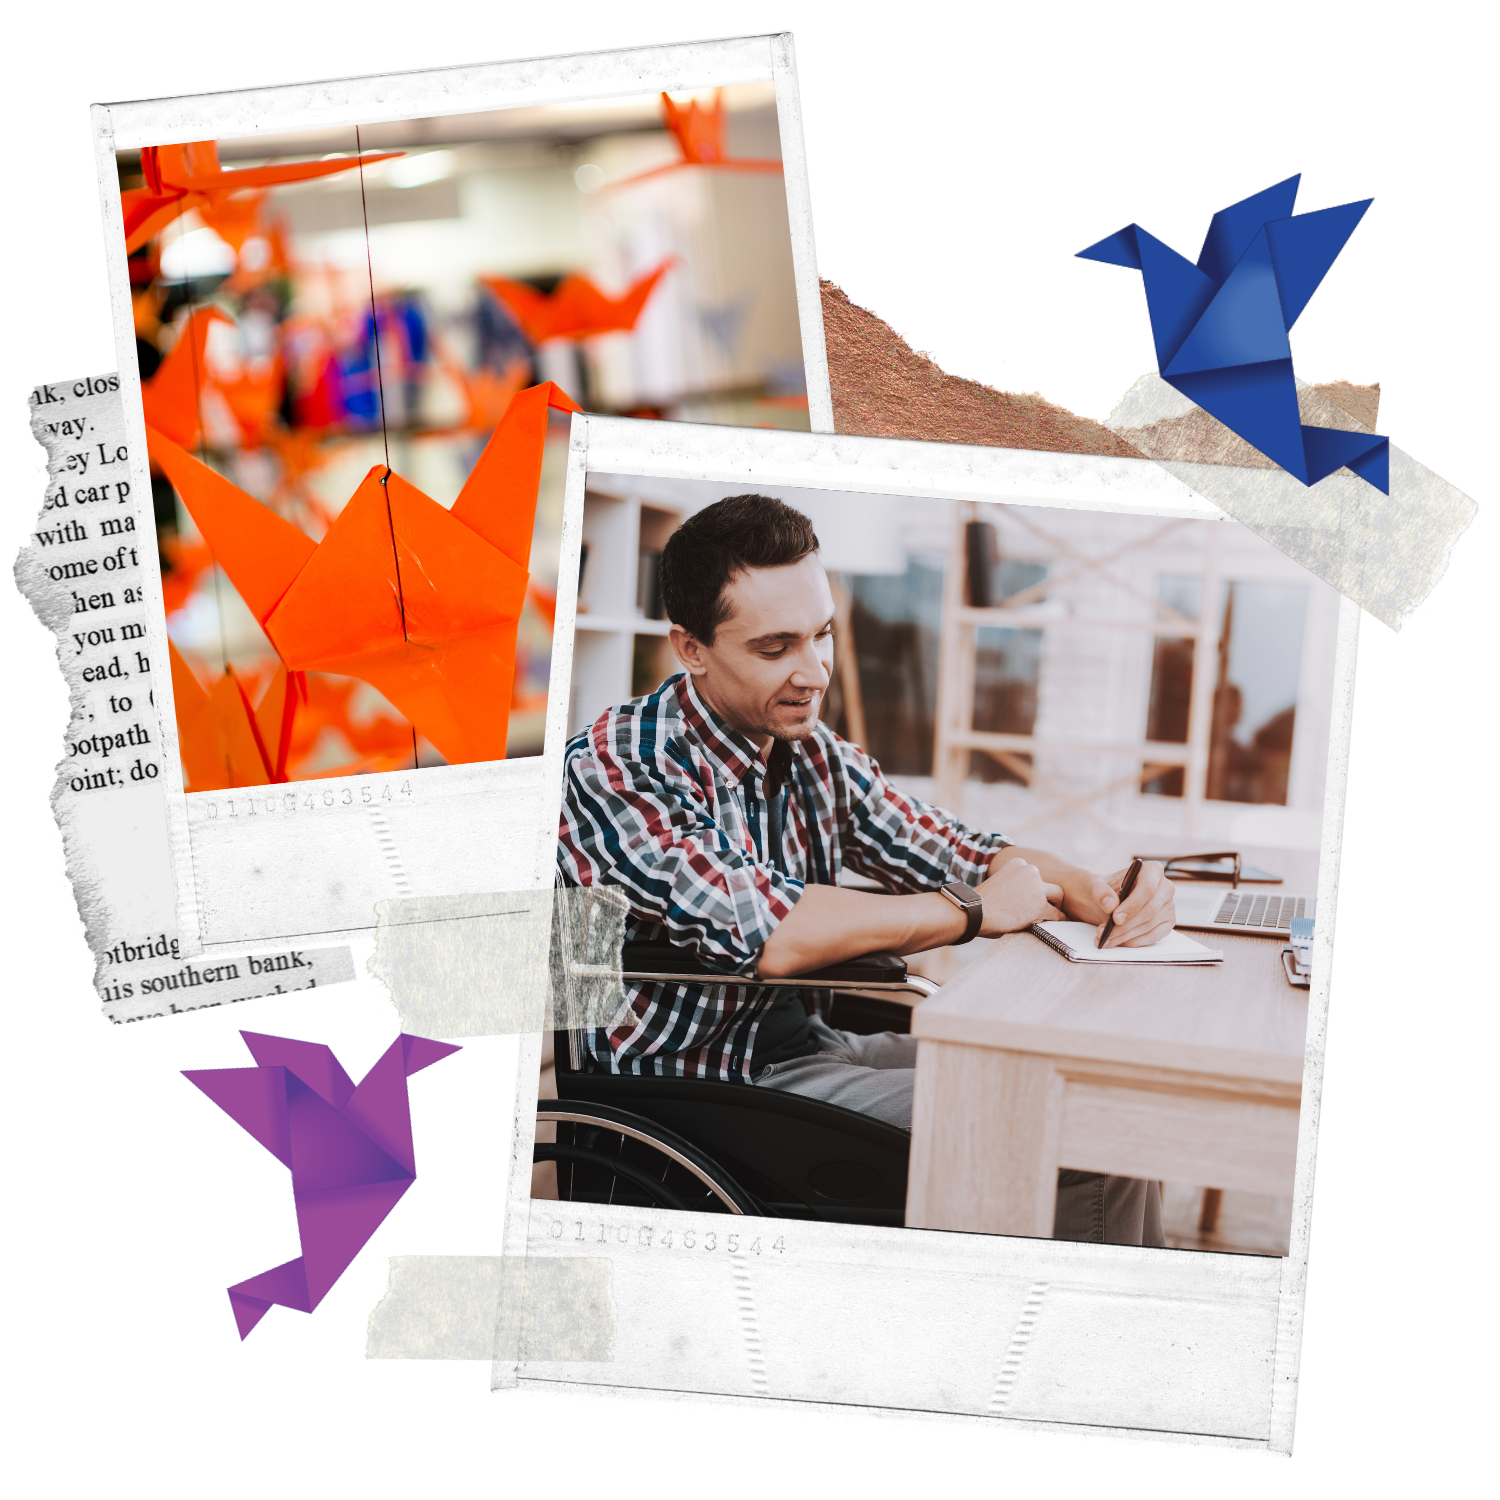 Collage Image showing hanging orange Paper Cranes and a man in a wheelchair sitting on a desk writing a letter